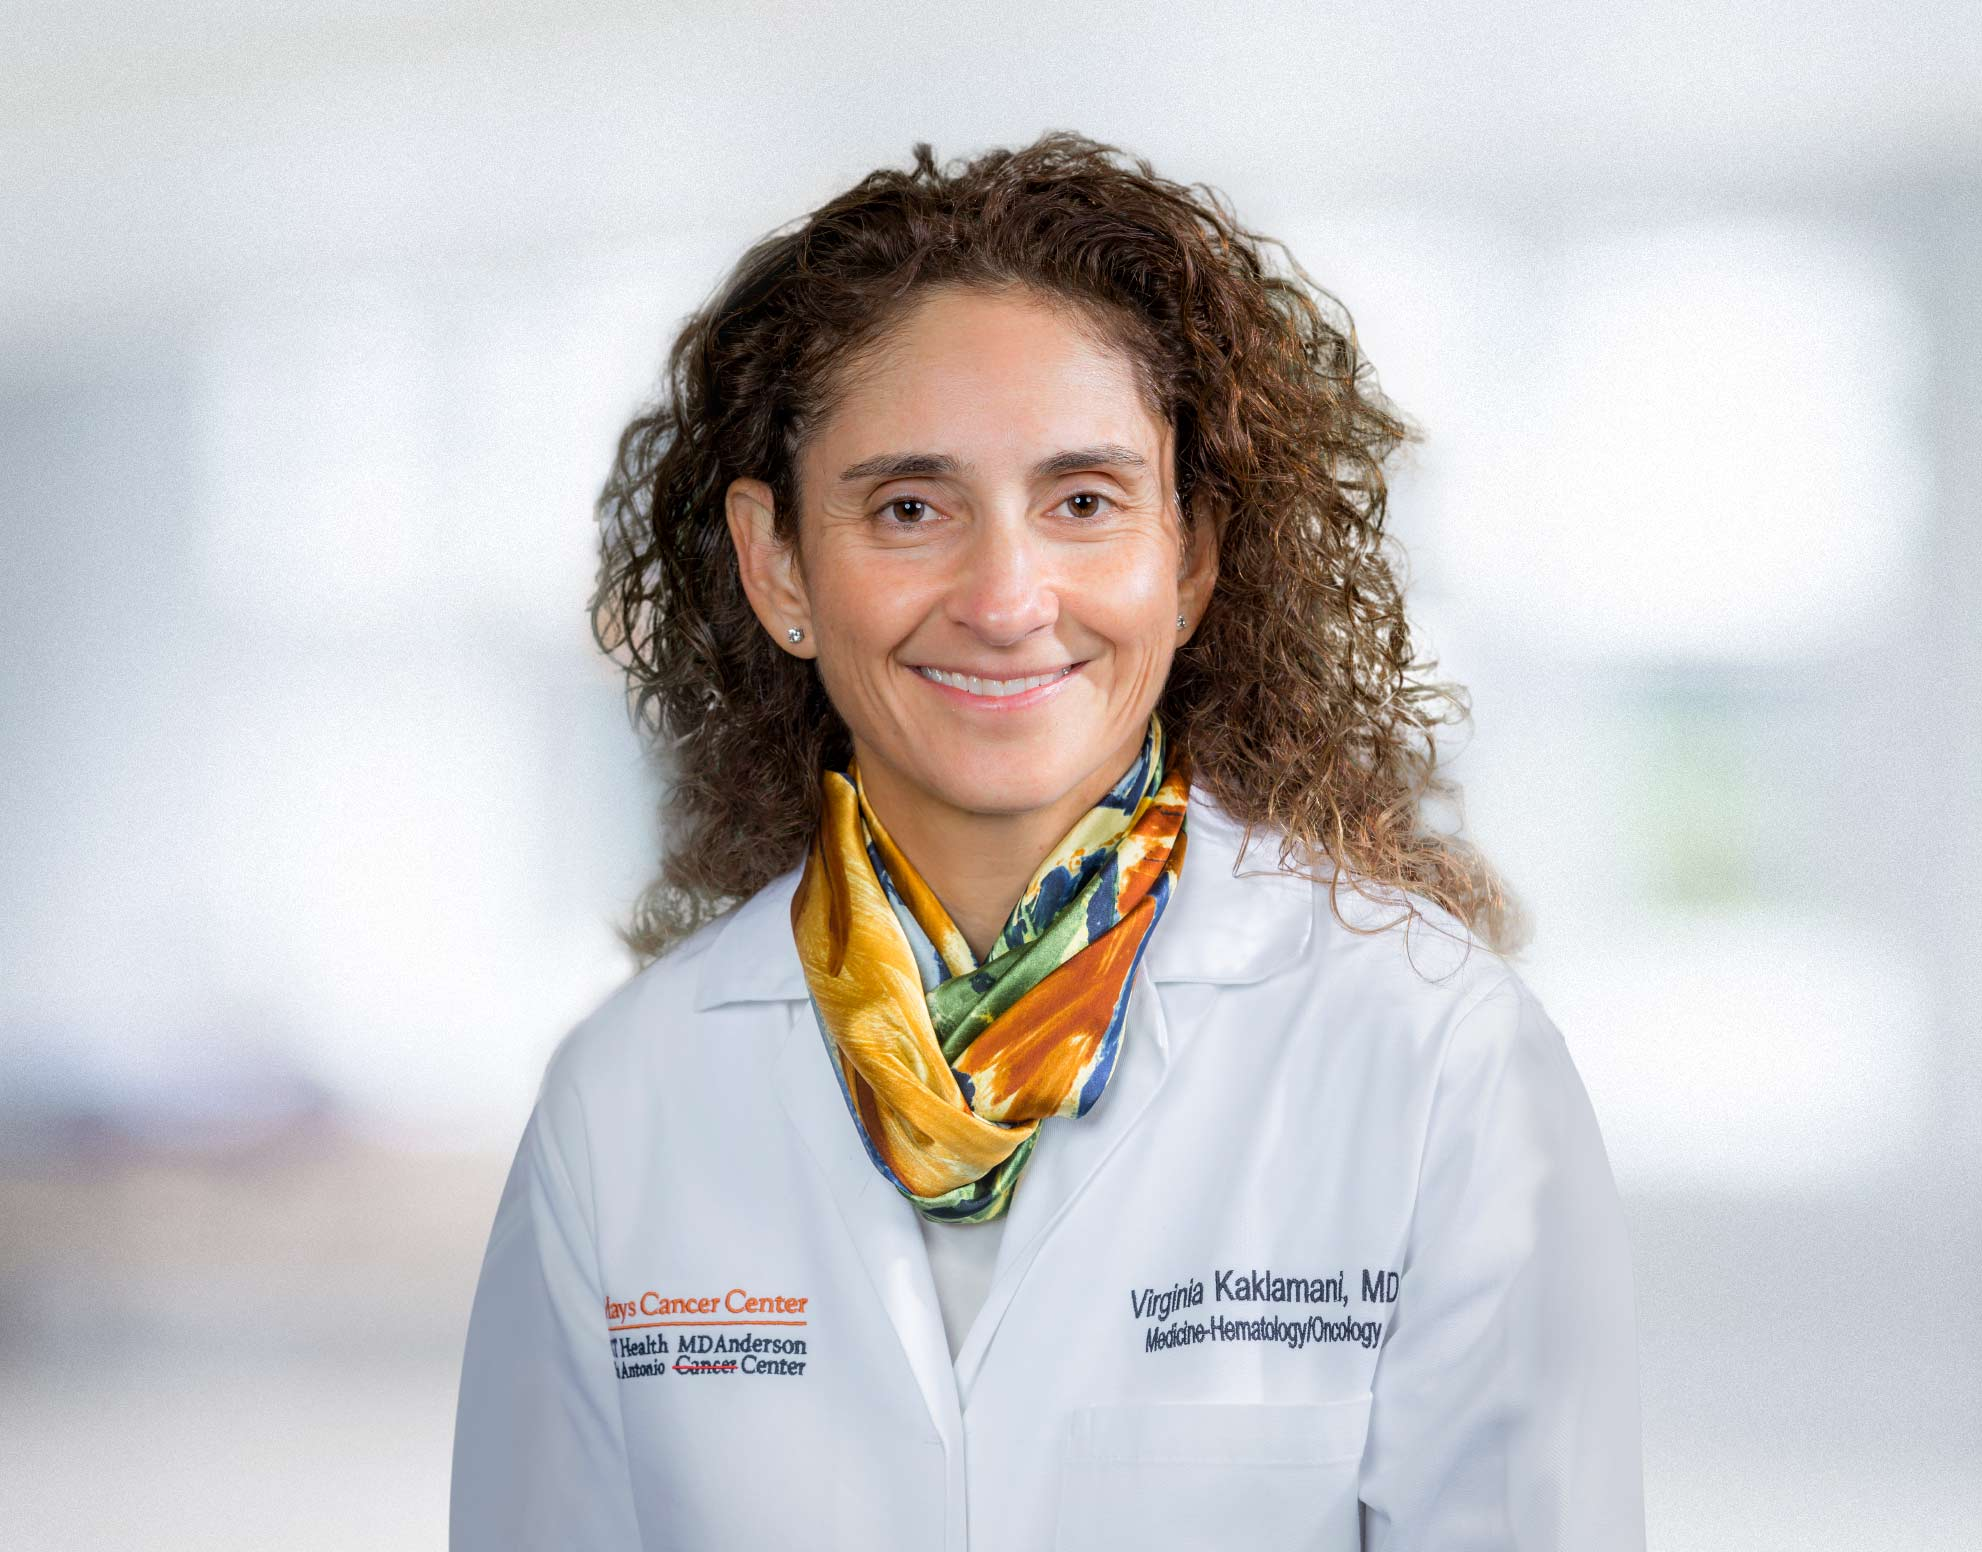 Photo of Virginia Kaklamani M.D.